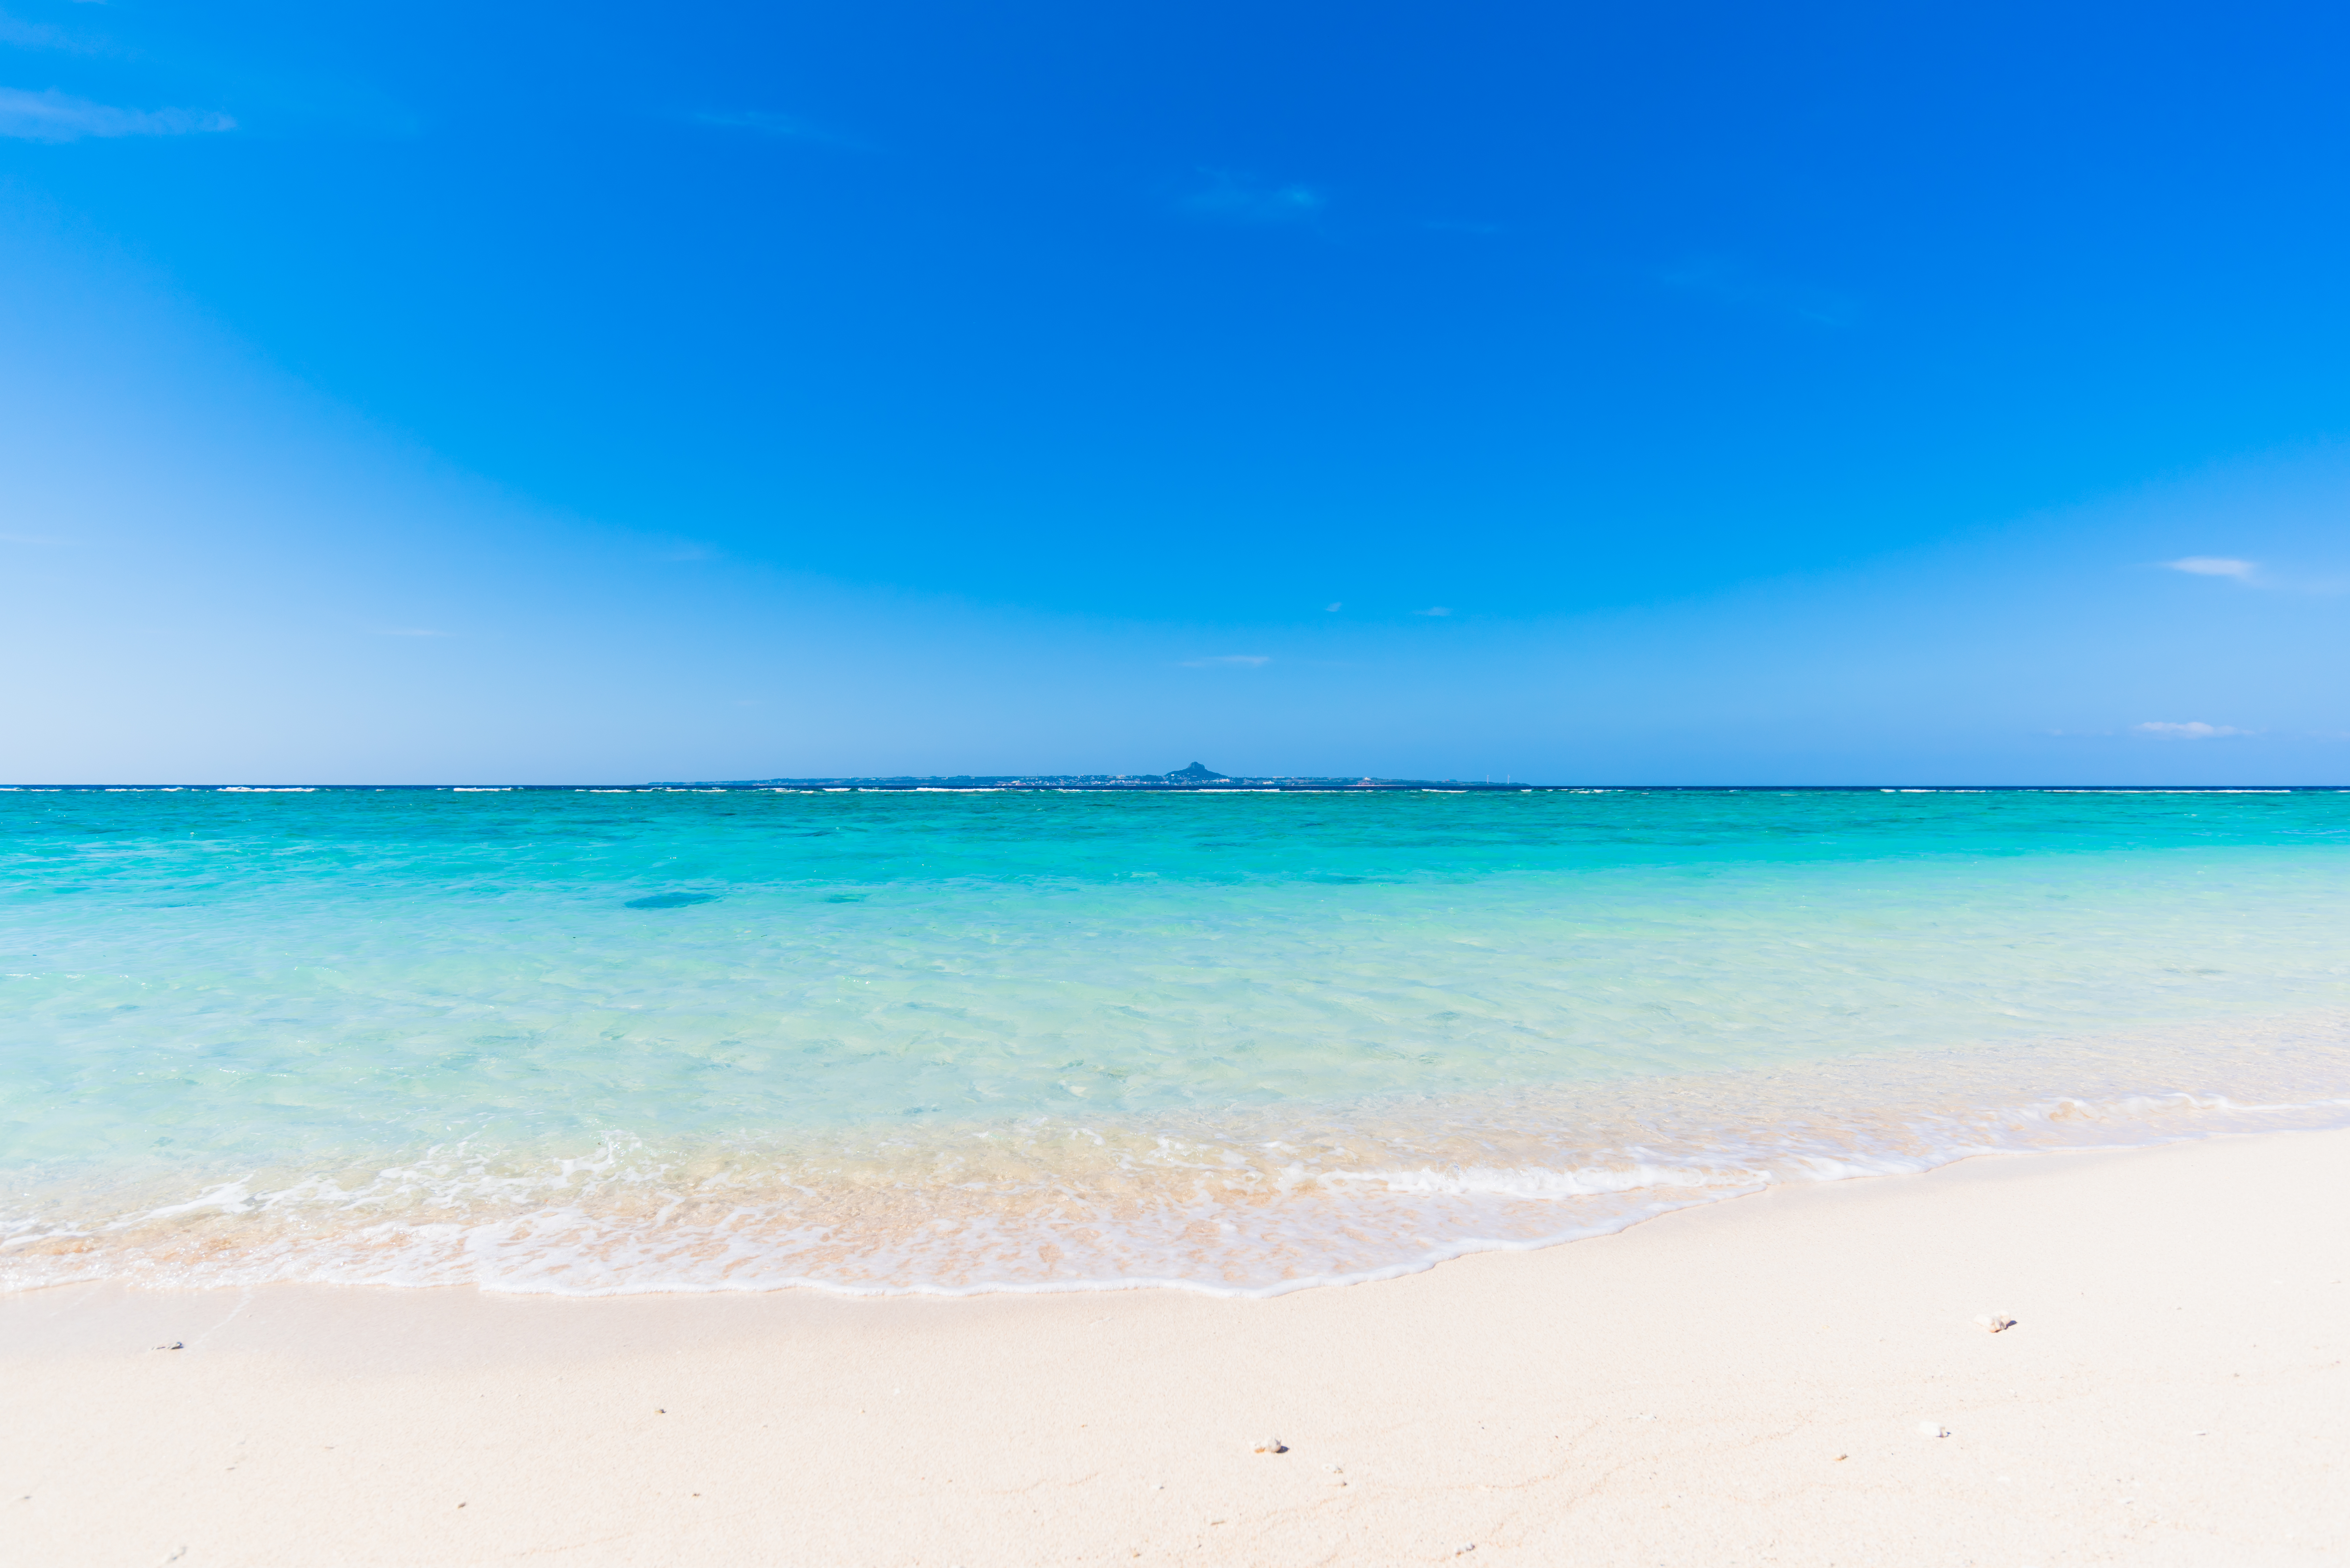 Island paradise: white-sand beaches and crystal clear water on Sesoko.